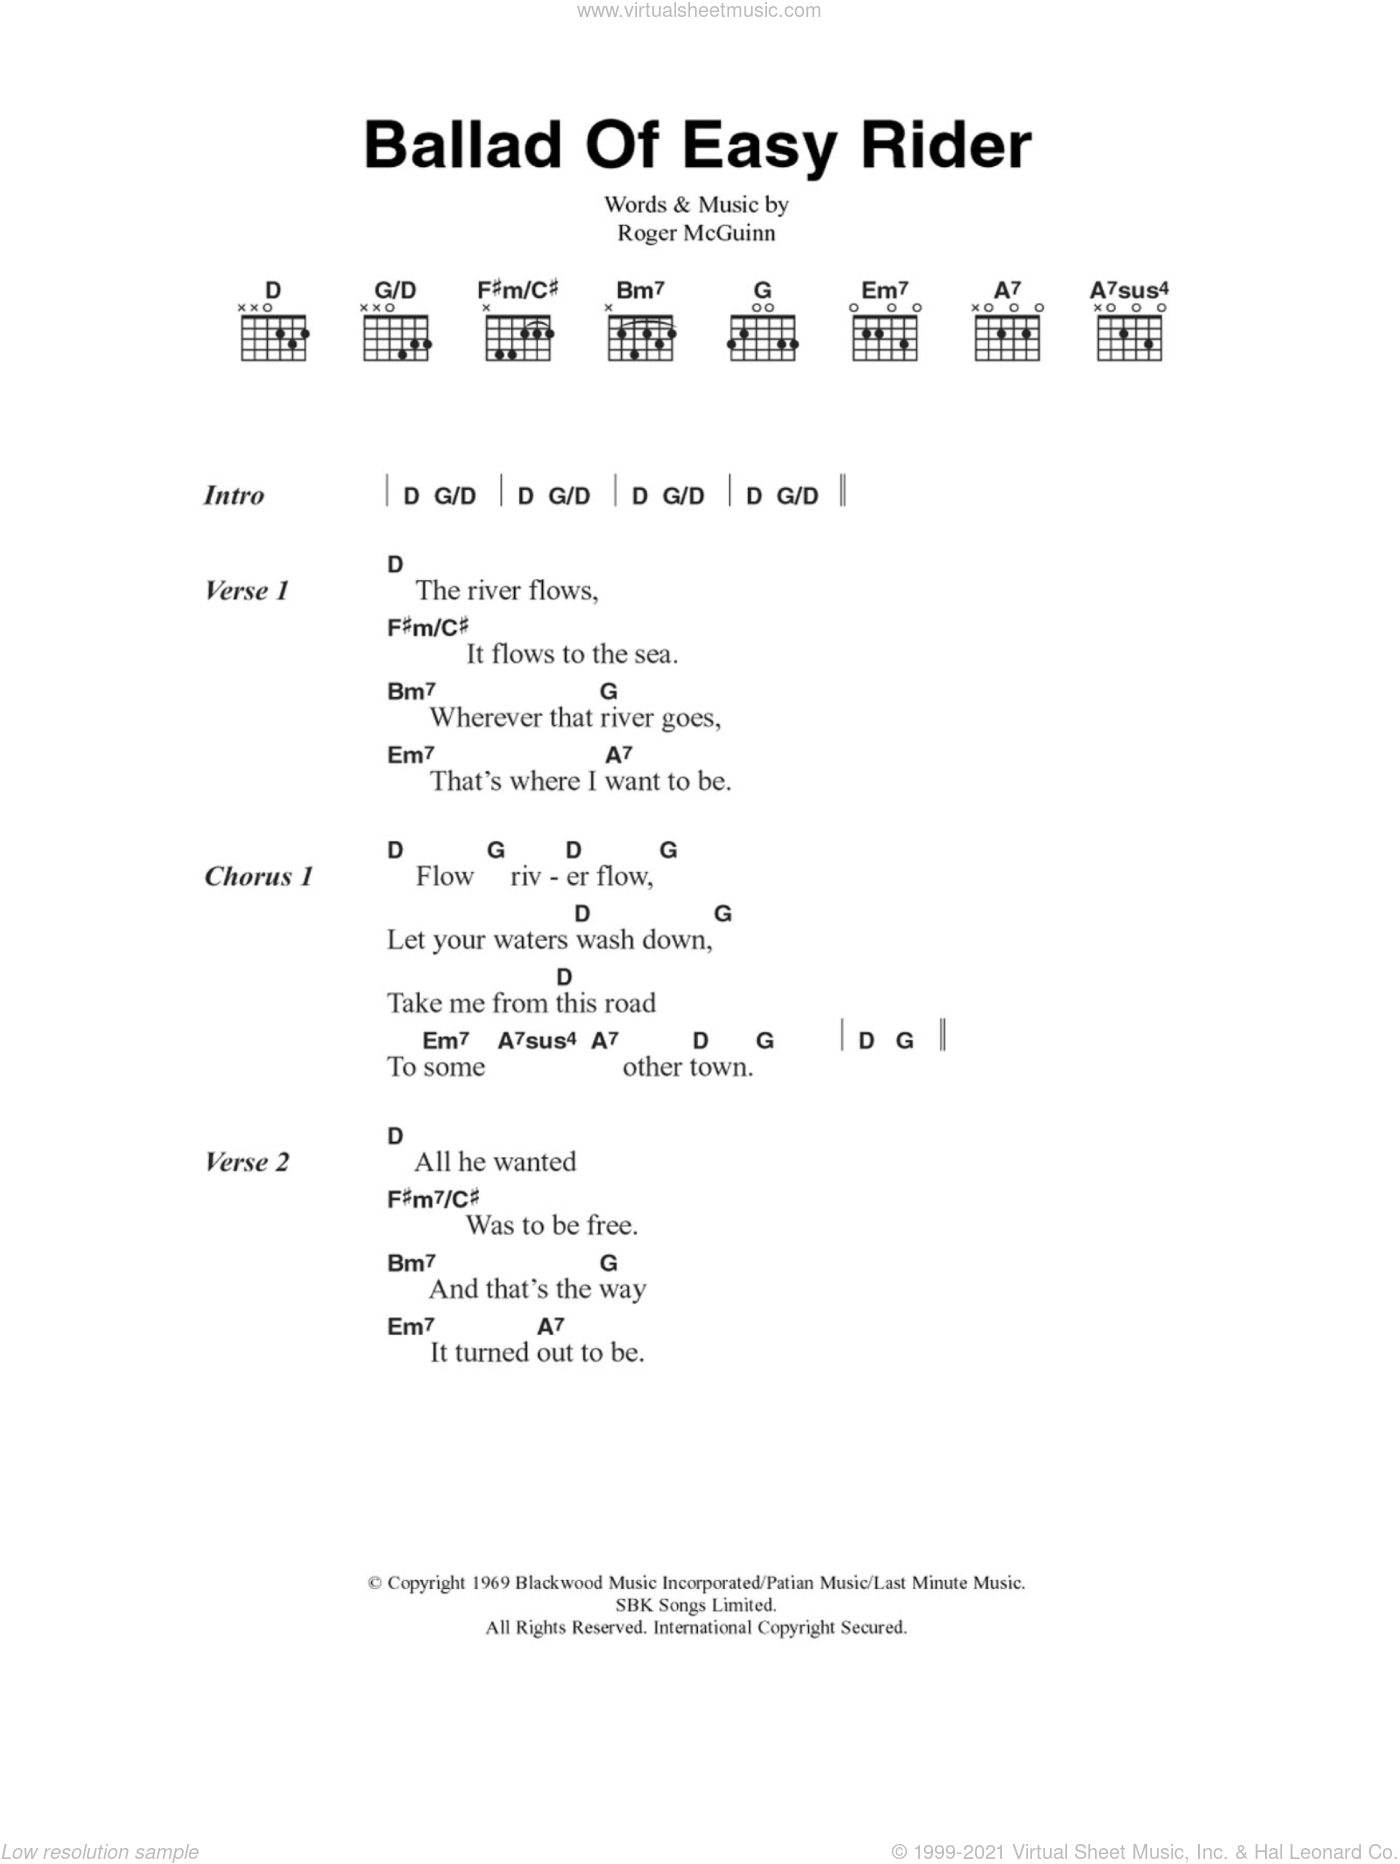 Ballad Of Easy Rider sheet music for guitar (chords) by Roger McGuinn